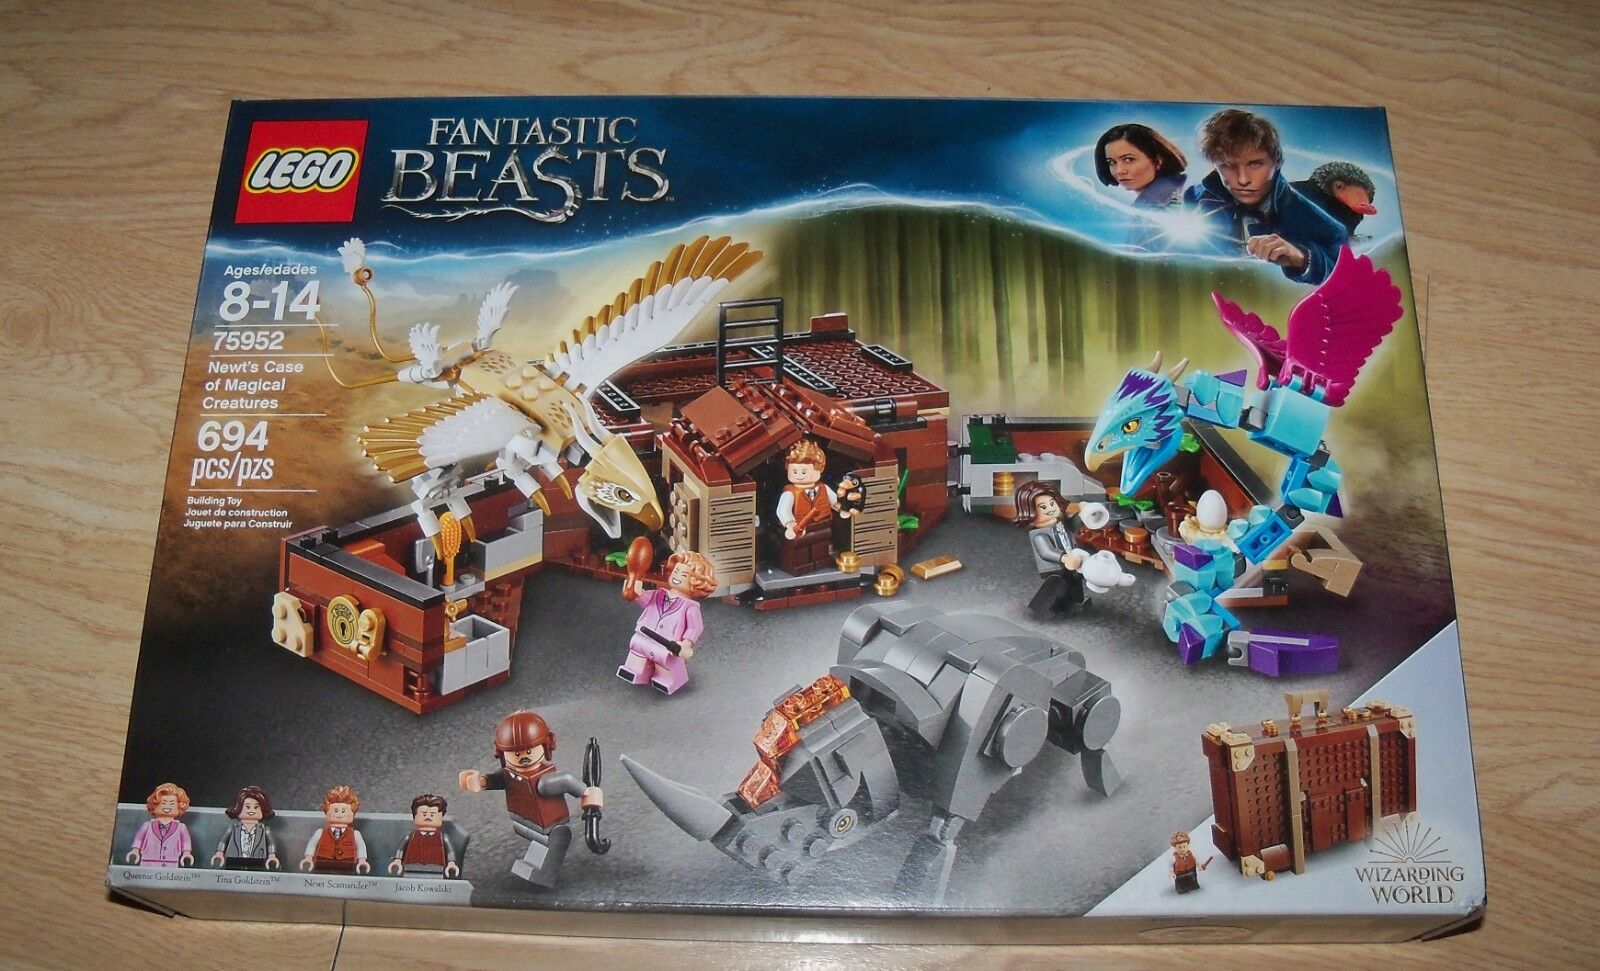 Nuovo Lego 75952 Fantastic Beasts Nuovot's Case of Magical Creatures Wizarding World